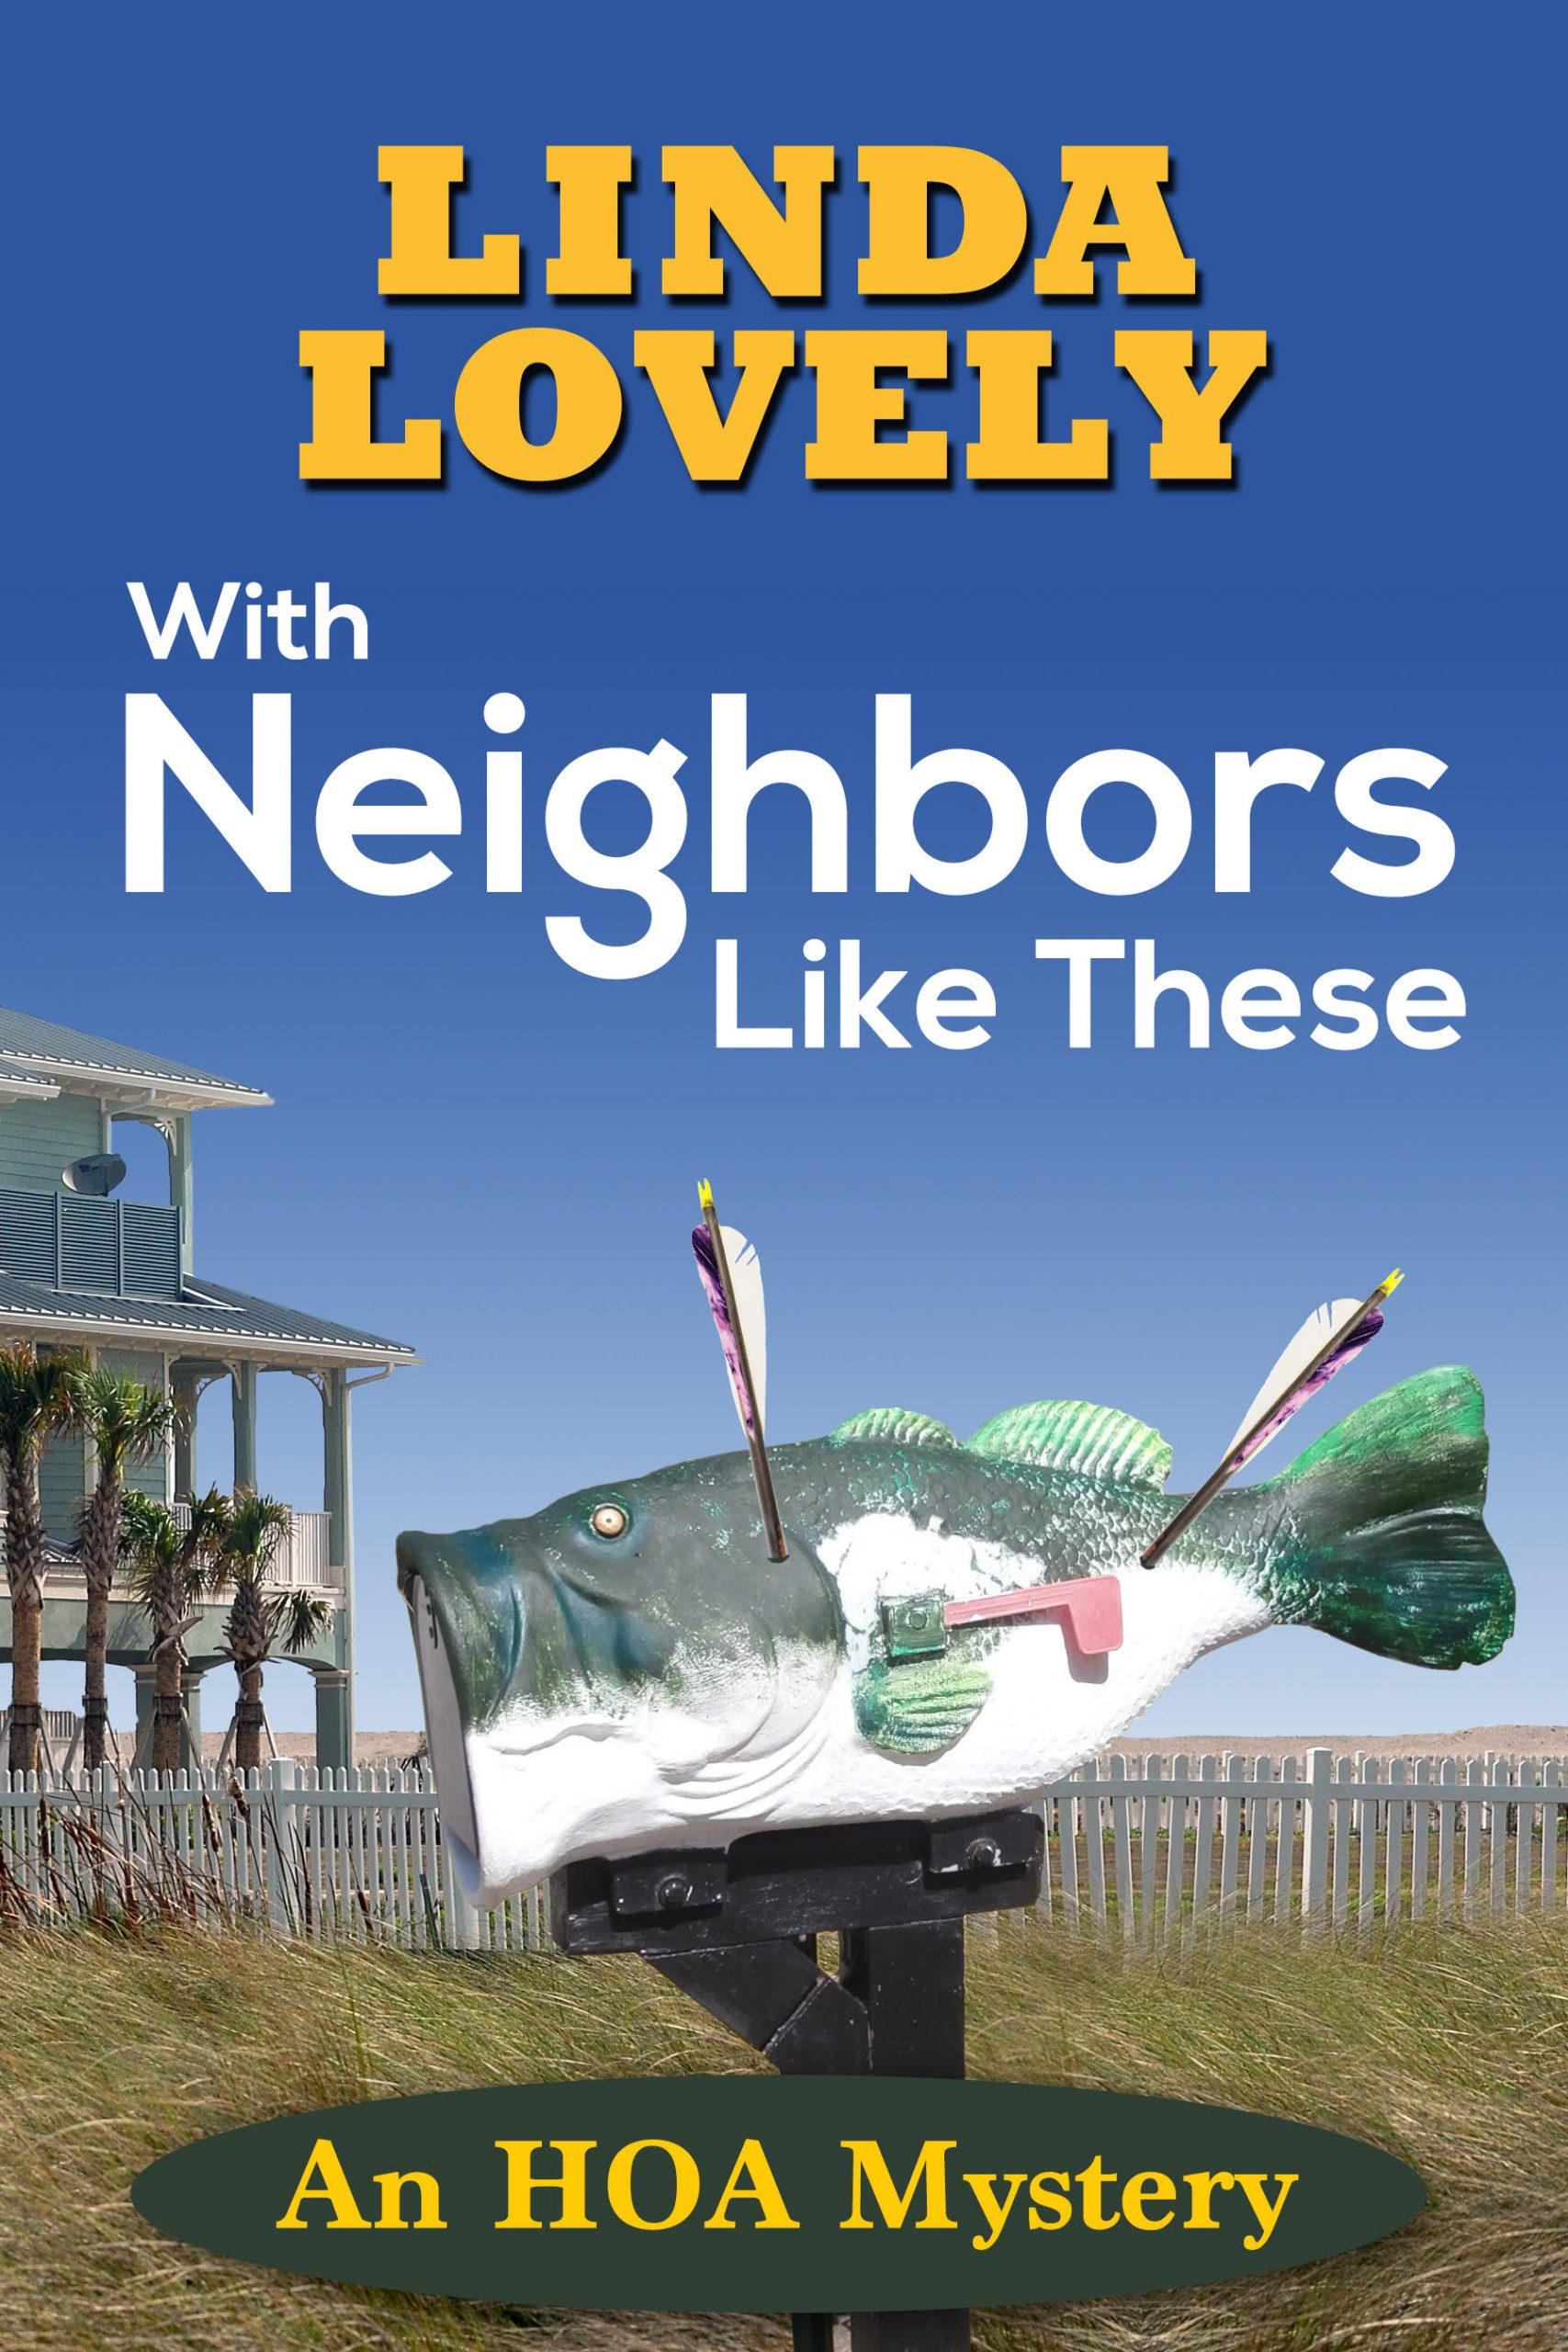 With Neighbors Like These by Linda Lovely